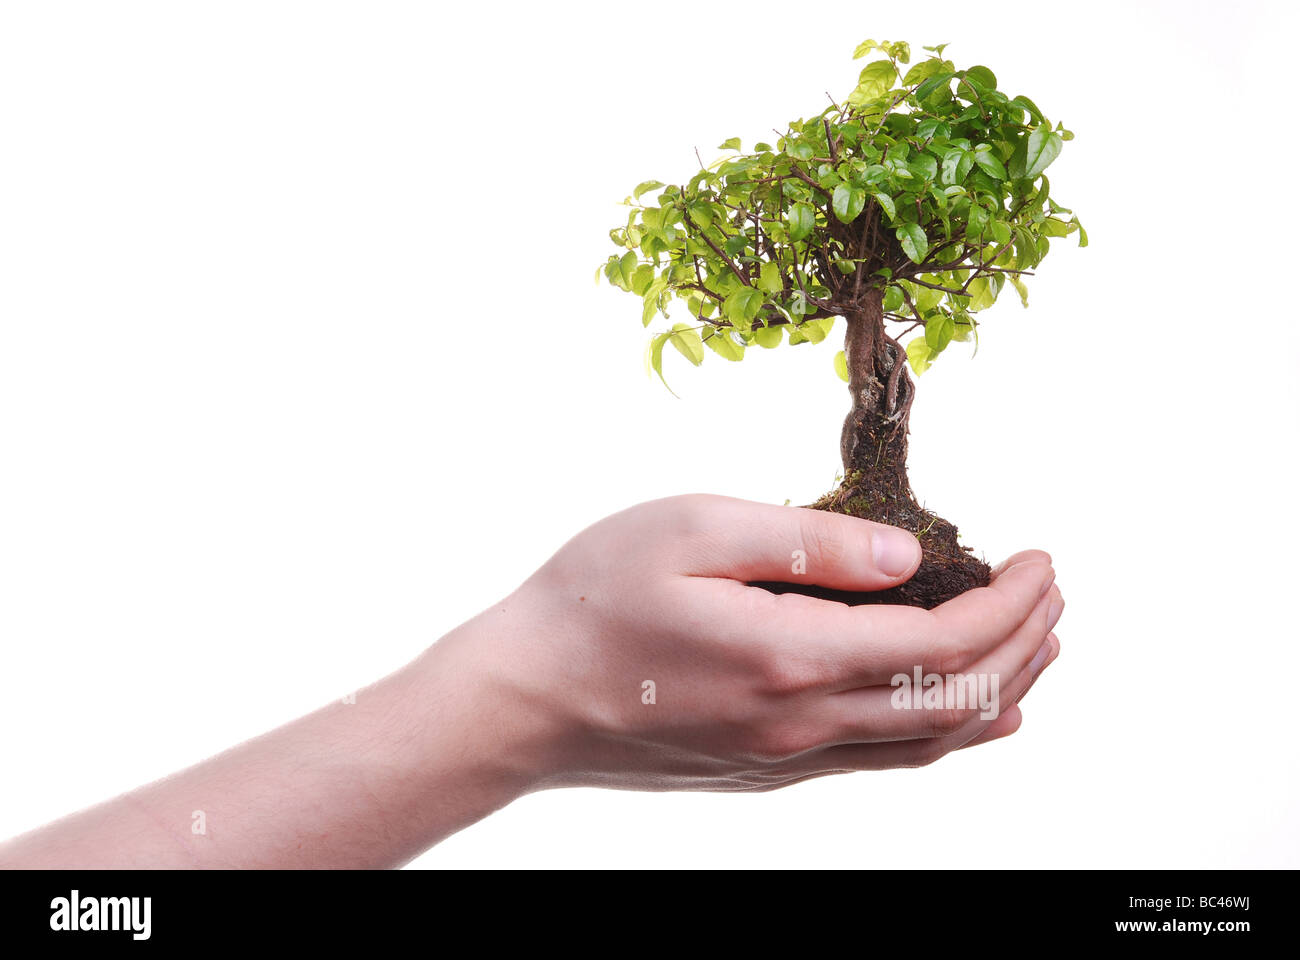 Hand holding a Bonsai tree isolated on a white background - Stock Image